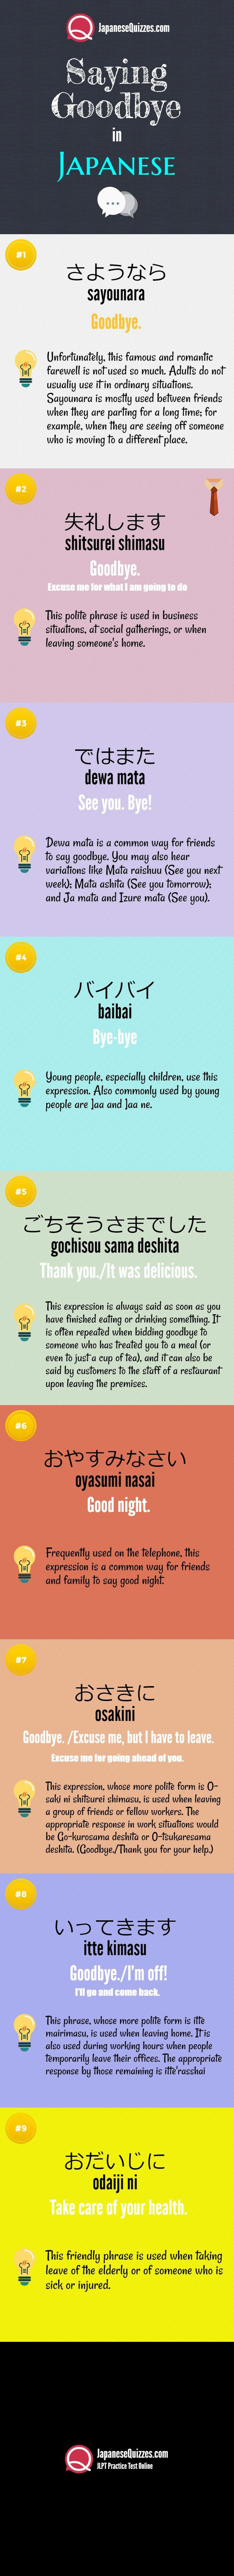 202 best Japanese Language Classroom images on Pinterest